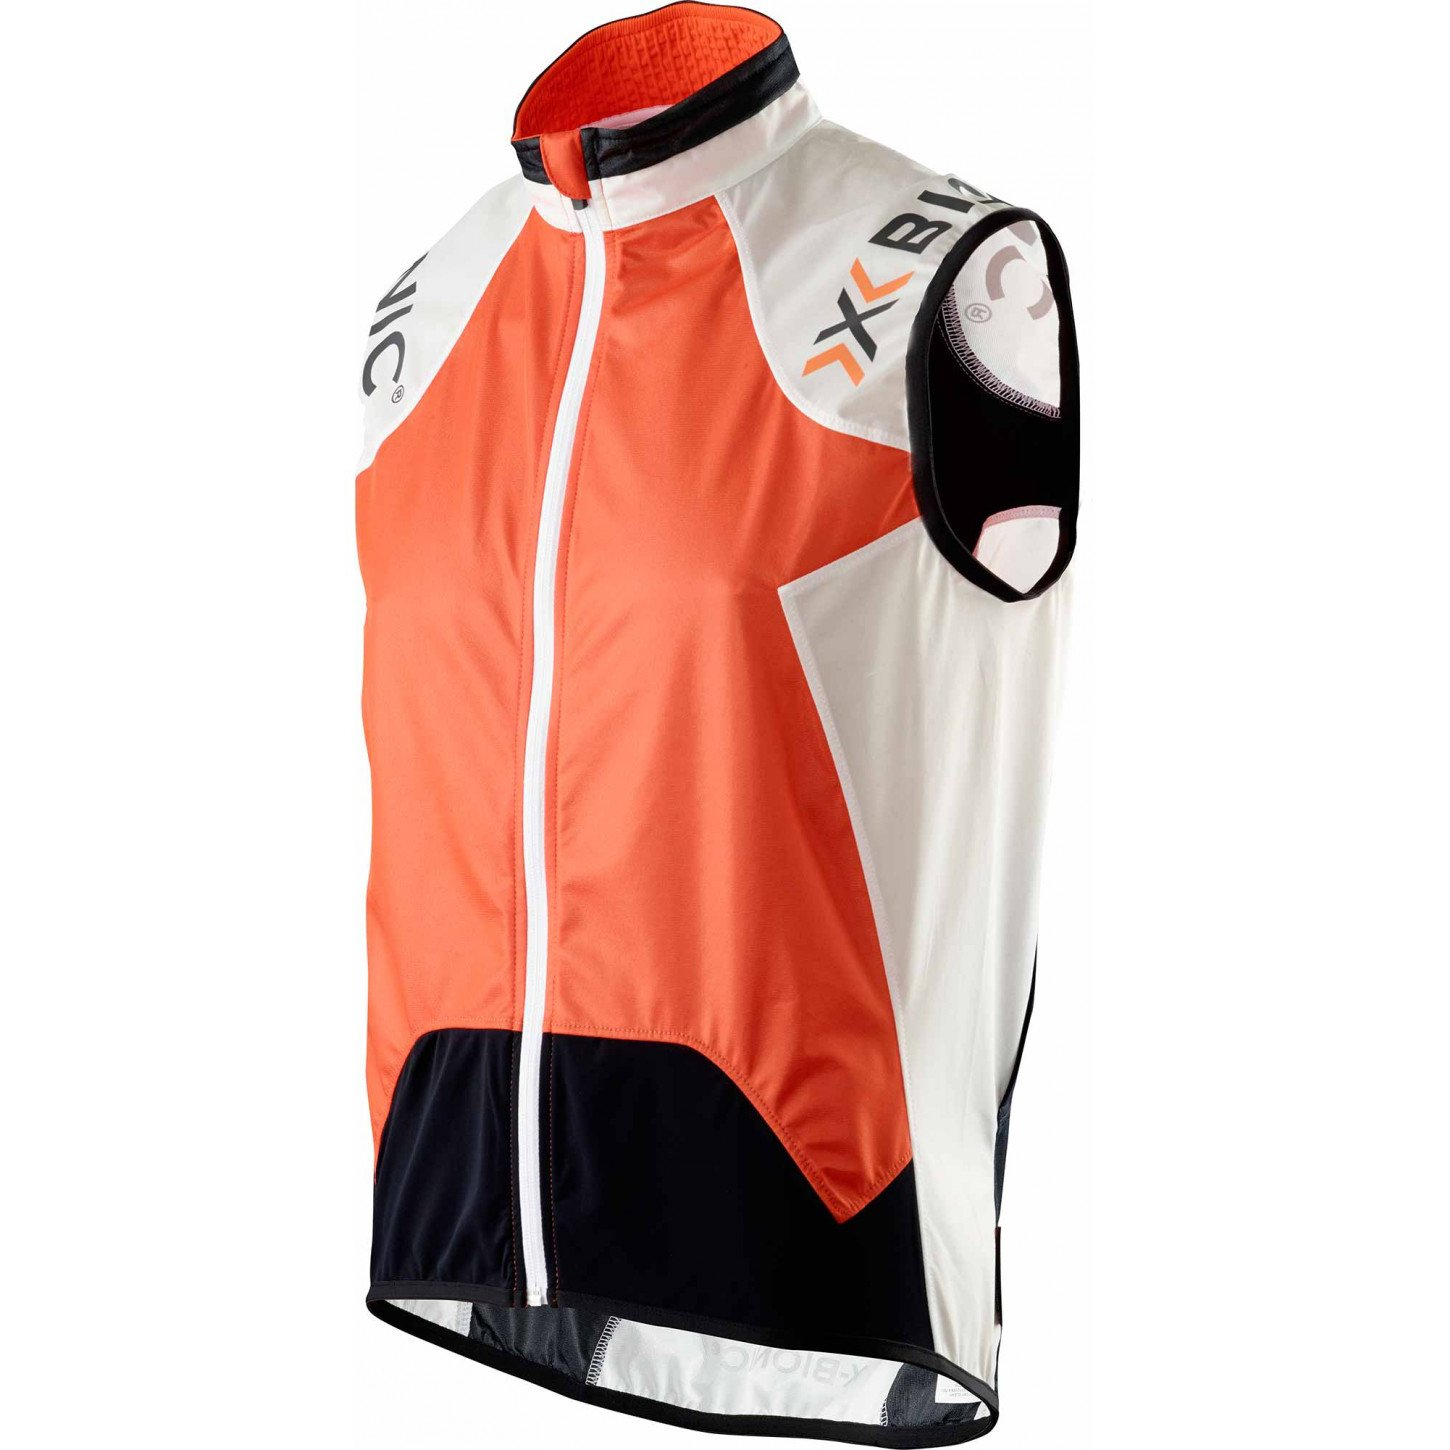 X-Bionic Spherewind Functional Cycling Adult MAN UPD OW Vest Multi-Coloured Orange/White/Black